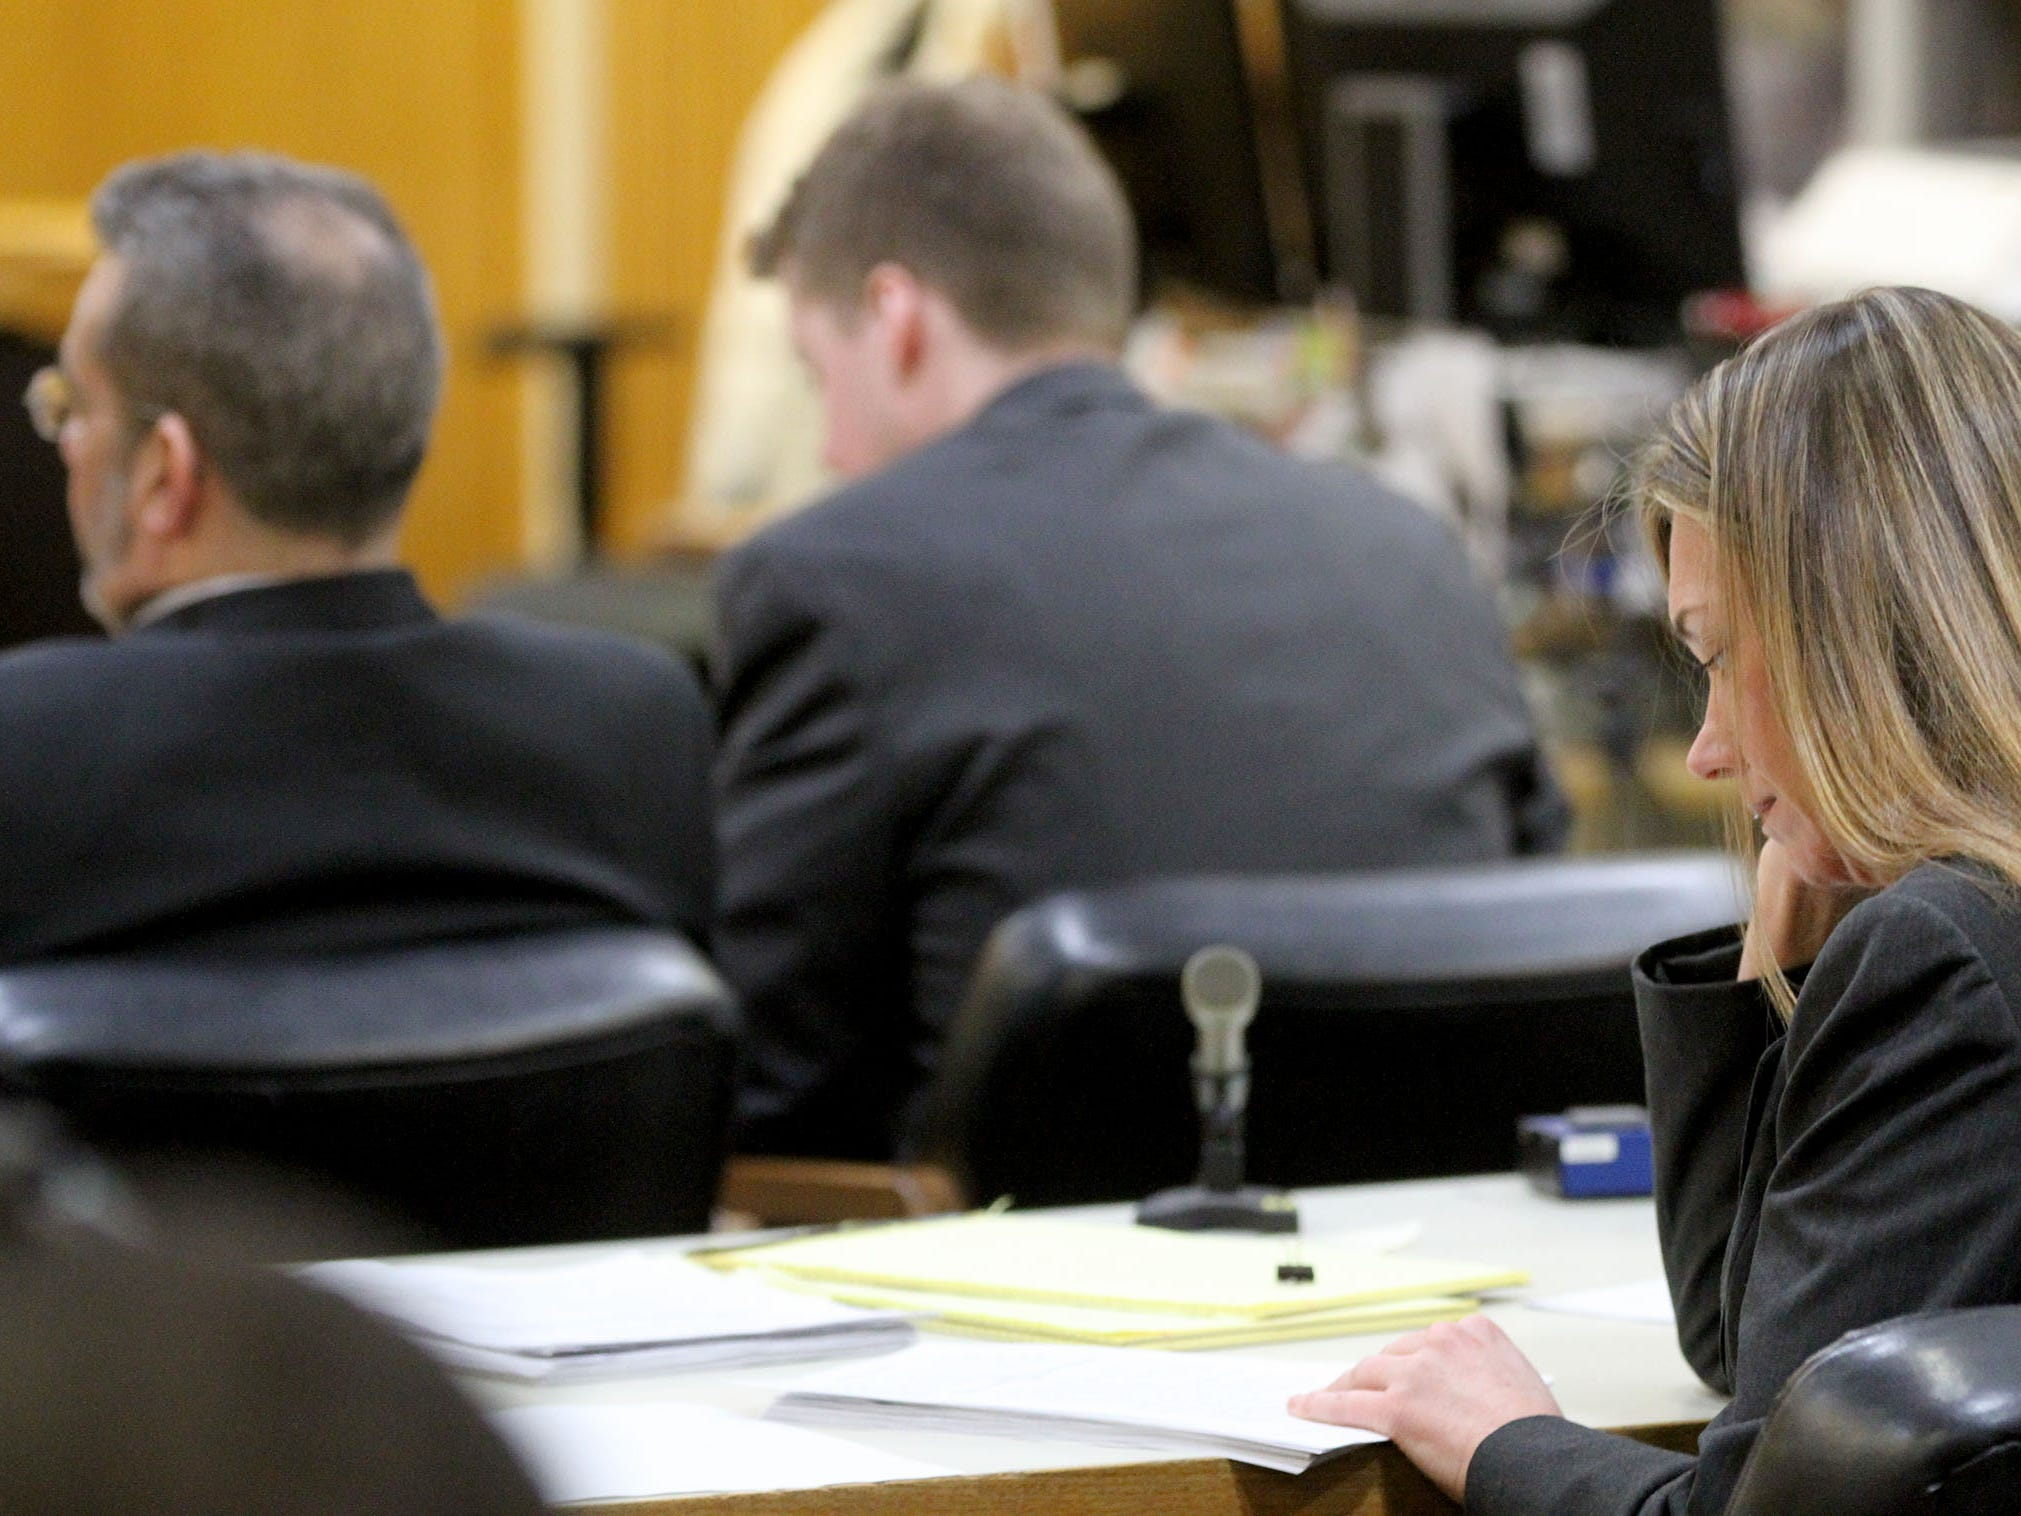 Monmouth County Assistant Prosecutor Meghan Doyle goes over the charging documents before the judge read them to the jury in Freehold Monday, February 25, 2019.  Liam McAtasney is on trial there for the murder of Sarah Stern.